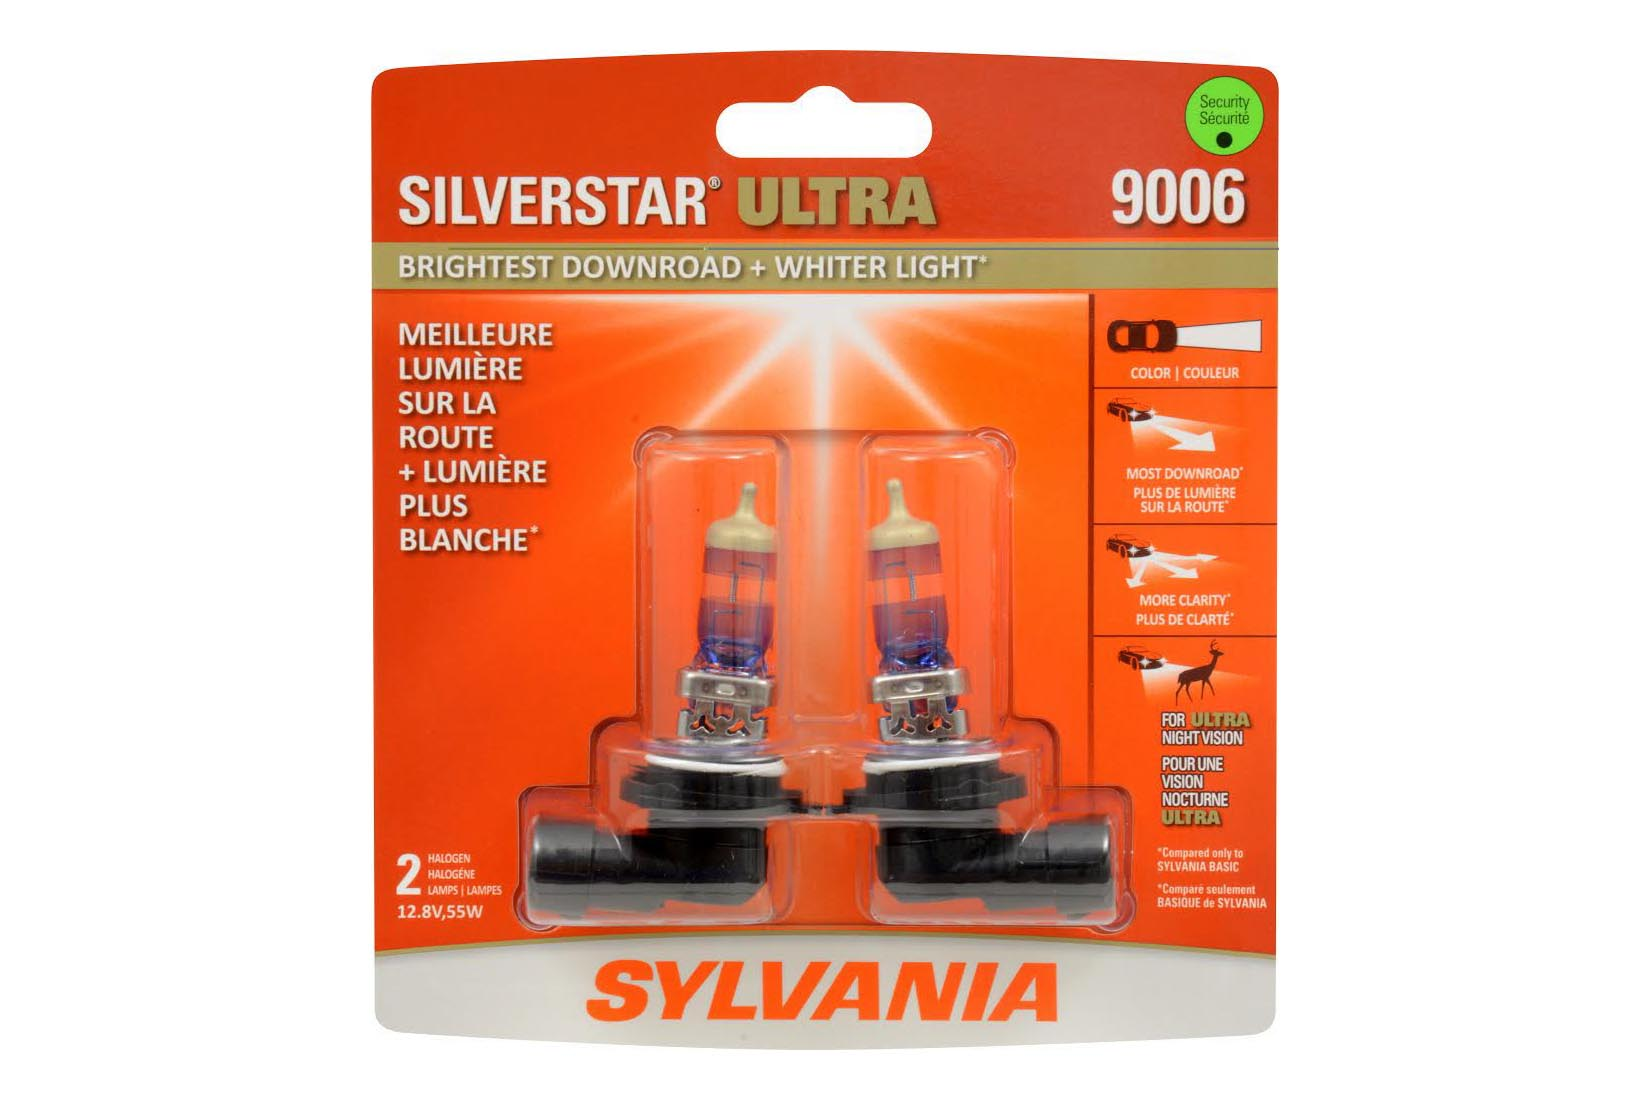 Here's a set of upgraded Sylvania halogen bulbs. As most factory halogen bulbs are built to a price-point and little else, companies like Sylvania have capitalized on the demand for improved lighting performance without extensive lighting system modification. A quality set of drop-in bulbs like these should improve lighting colour and saturation in most rides.